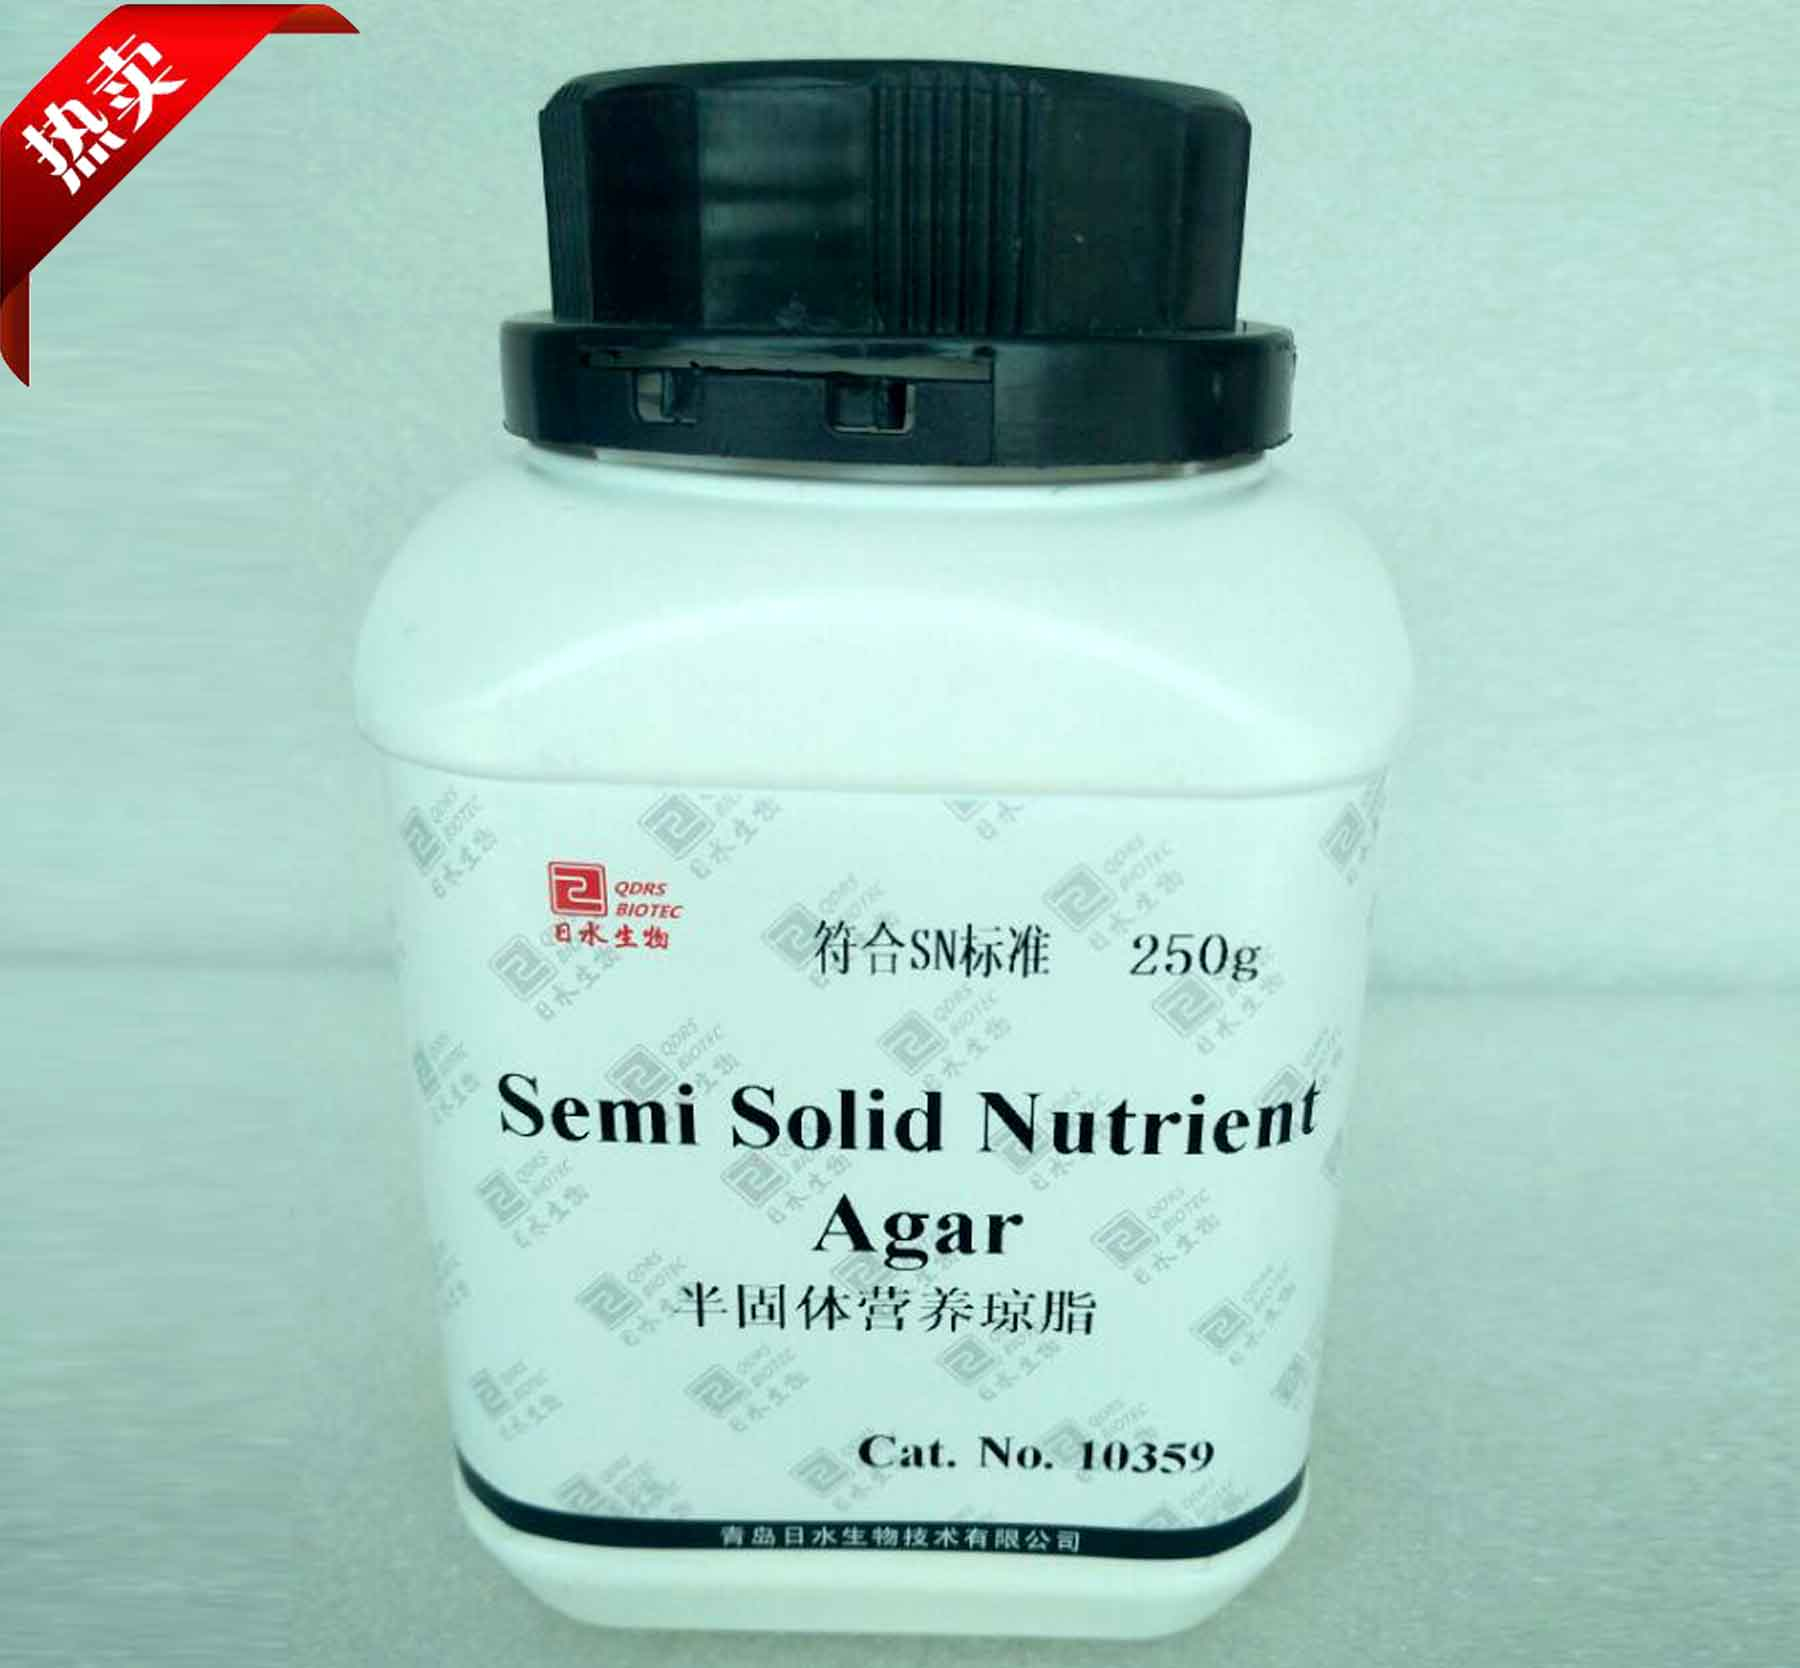 半固体营养琼脂(semi solid nutrient agar)